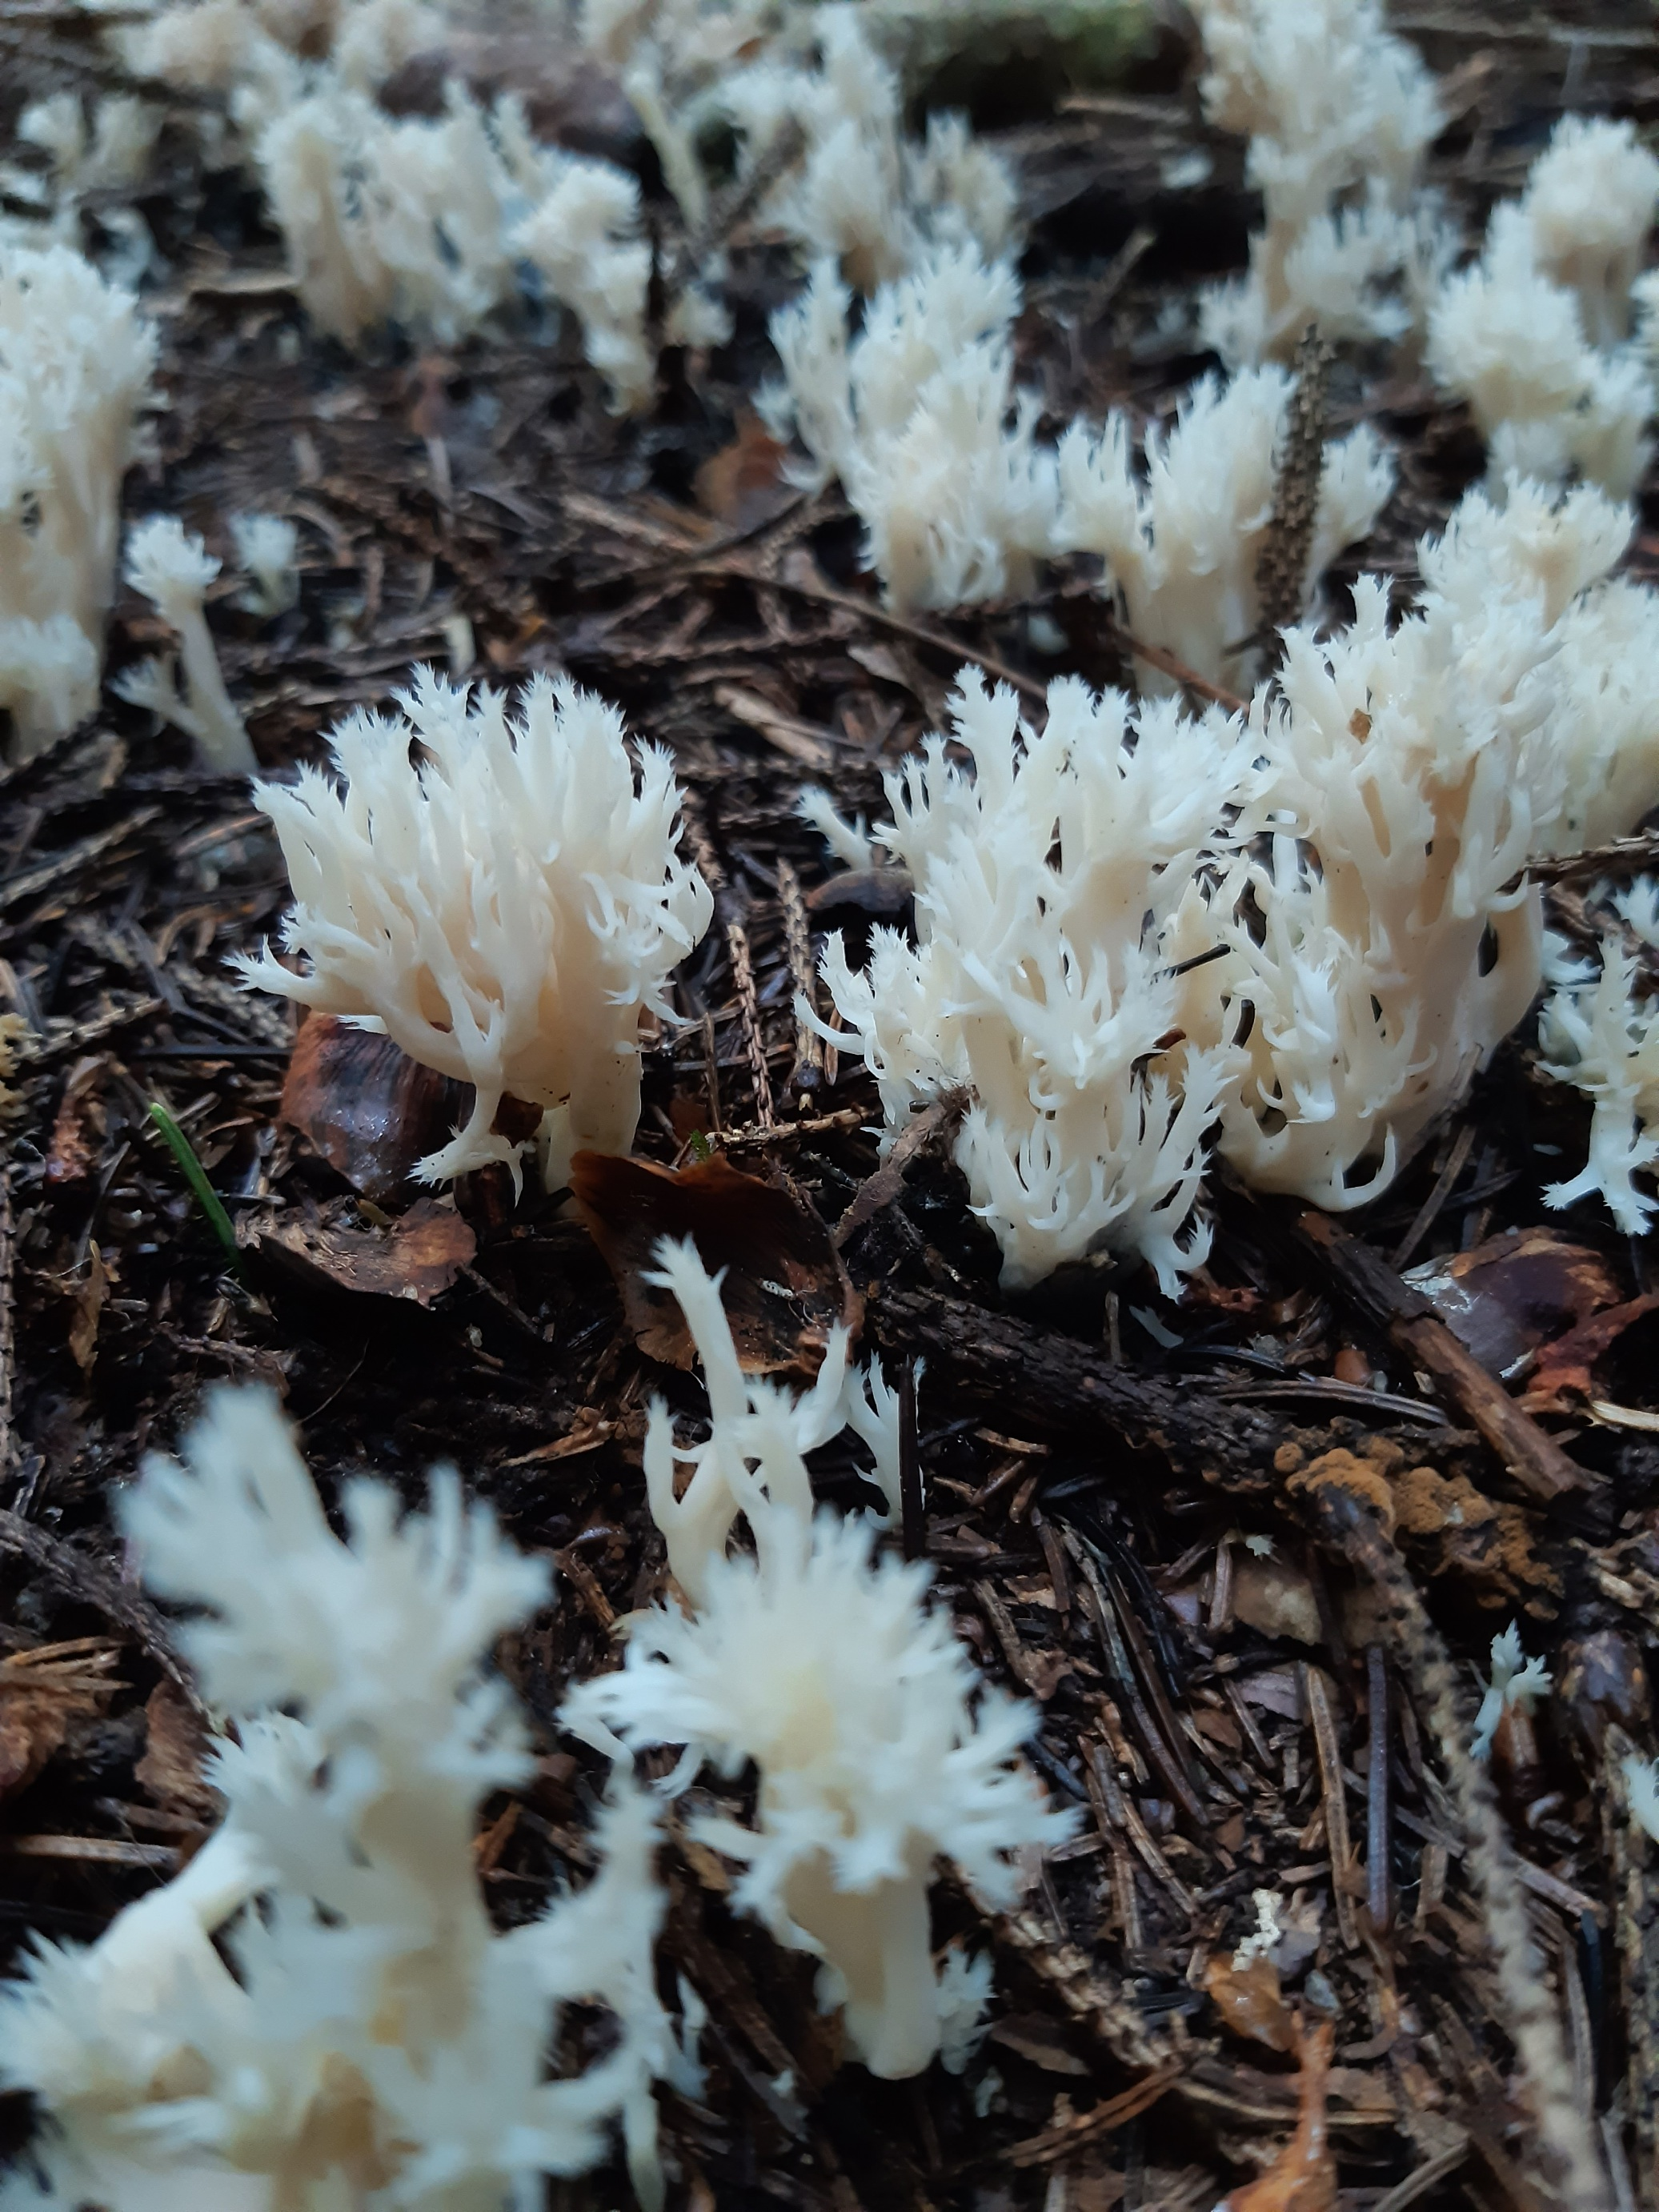 some clavulina coralloides (i think)